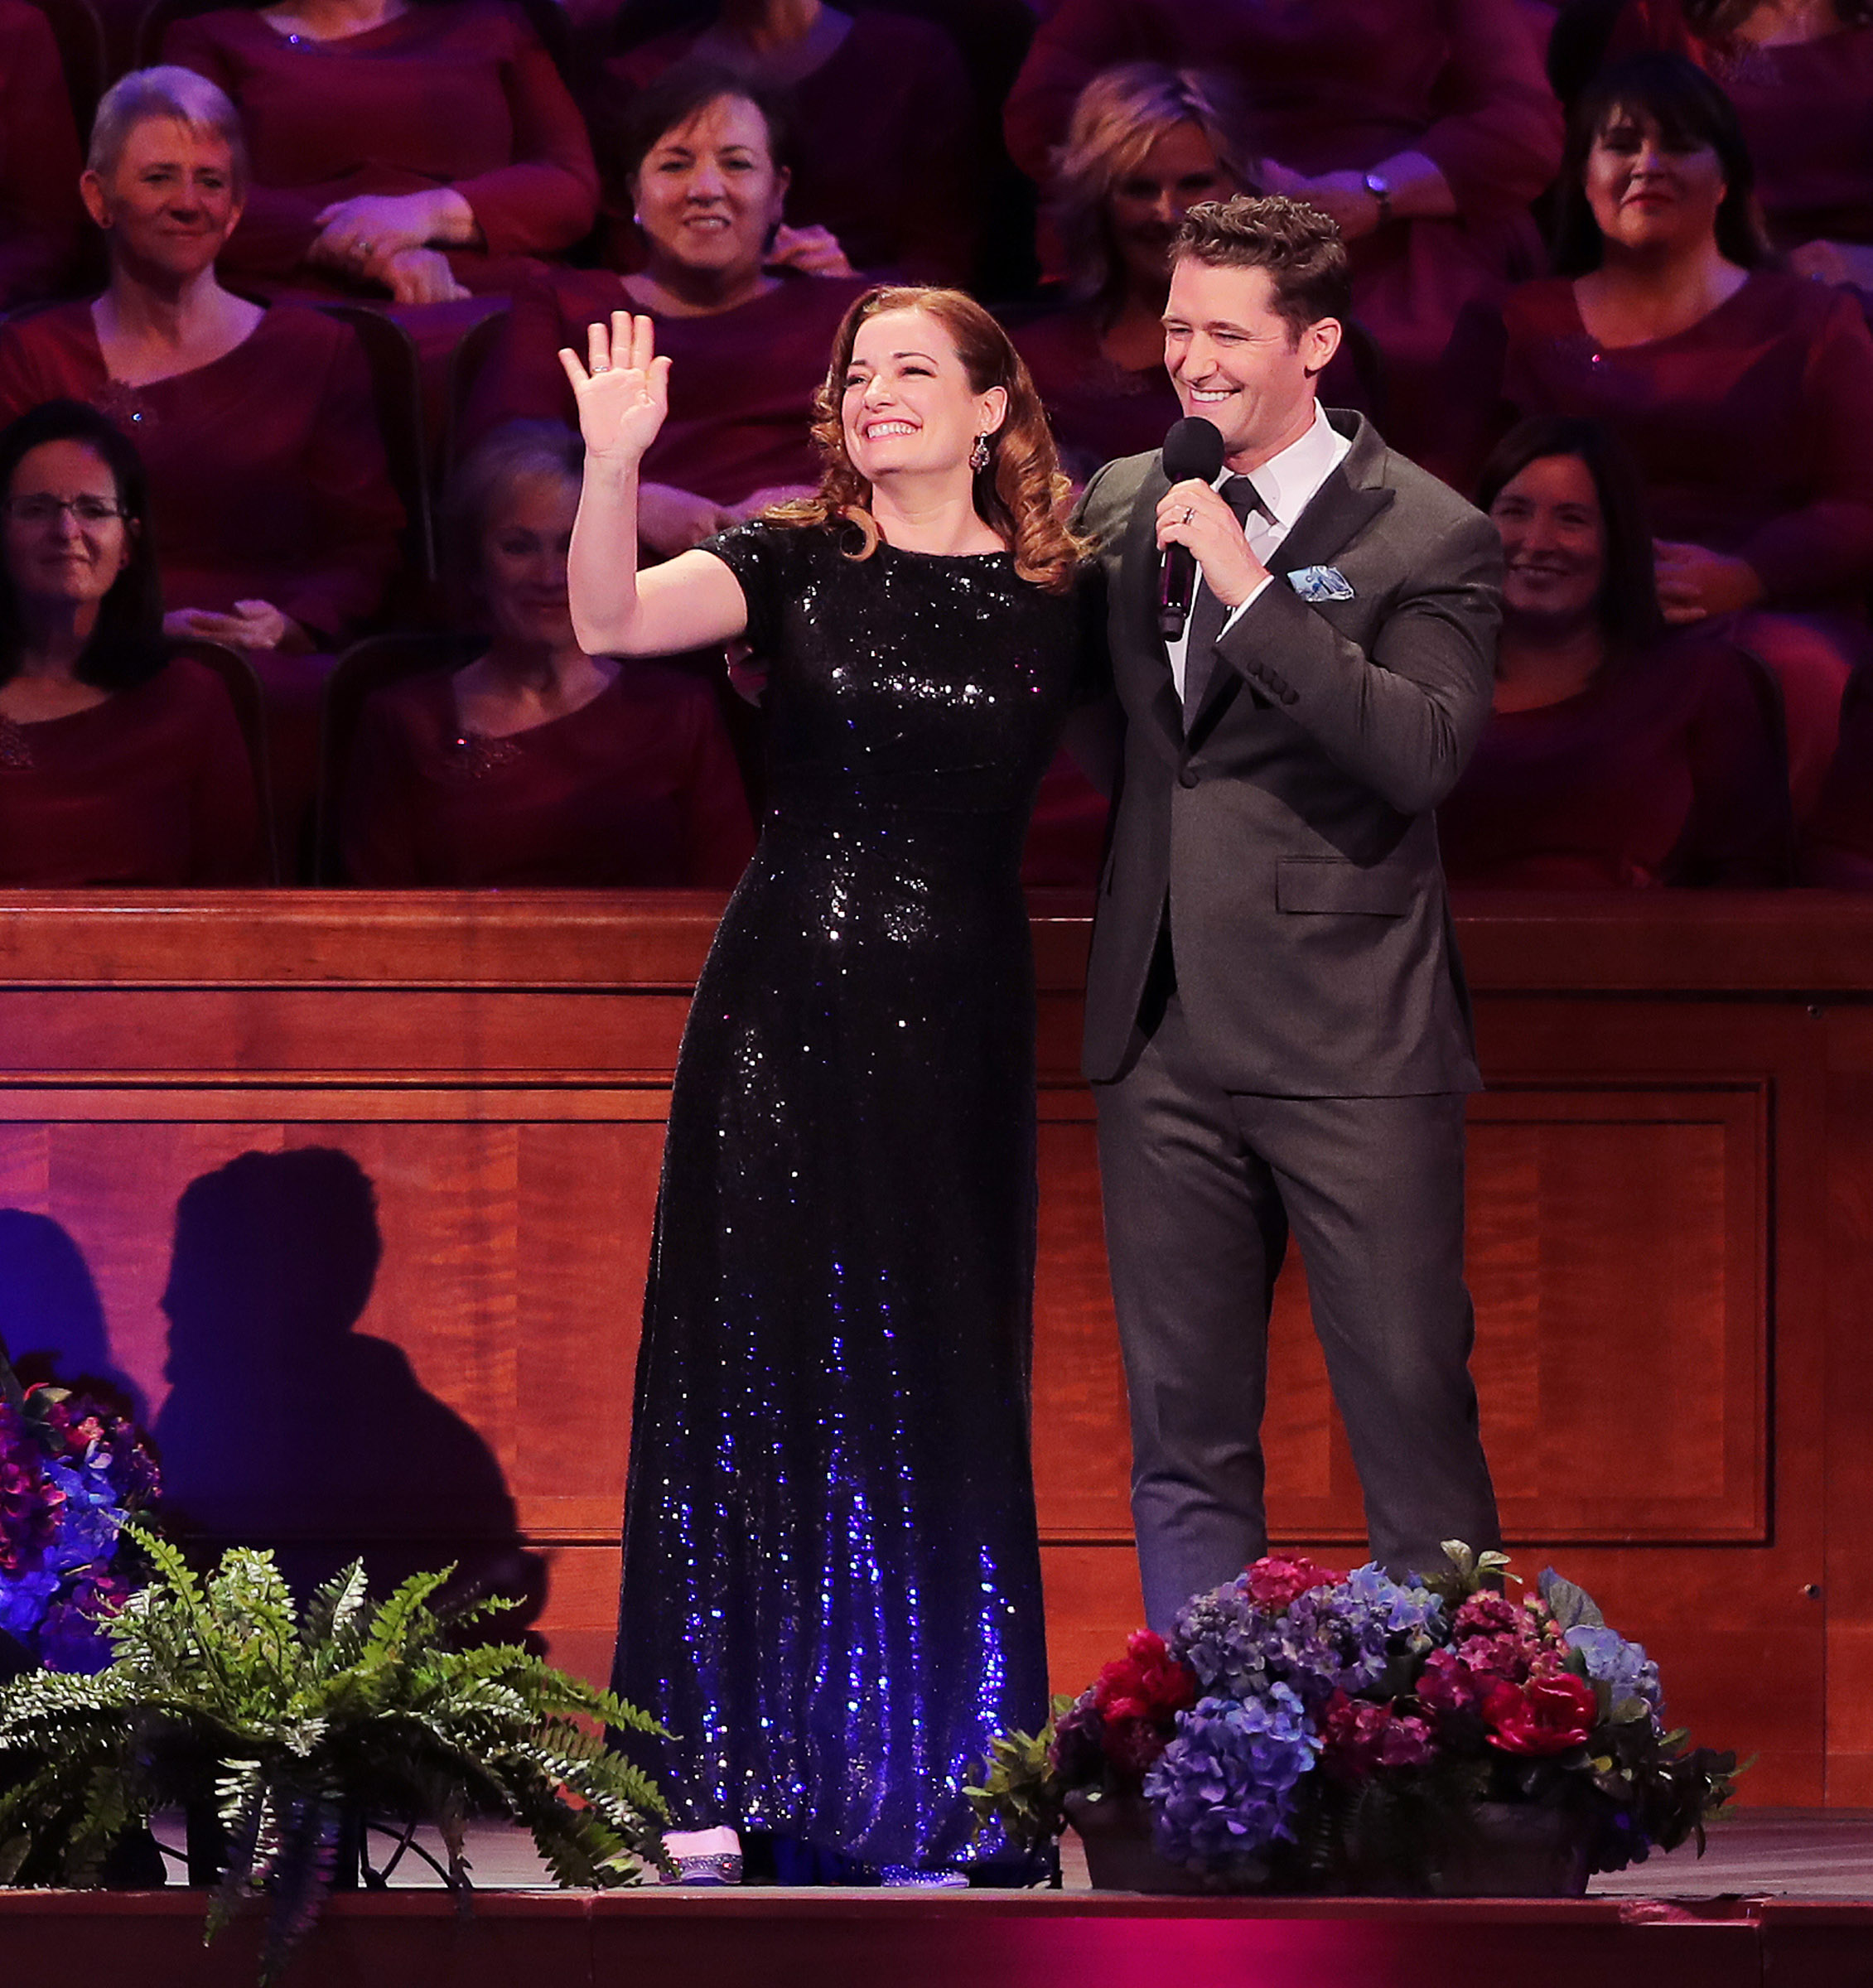 Guest performers Laura Michelle Kellythe and Matthew Morrison take the stage as they join the Mormon Tabernacle Choir and Orchestra at Temple Square for their annual Pioneer Concert at the Conference Center in Salt Lake City.